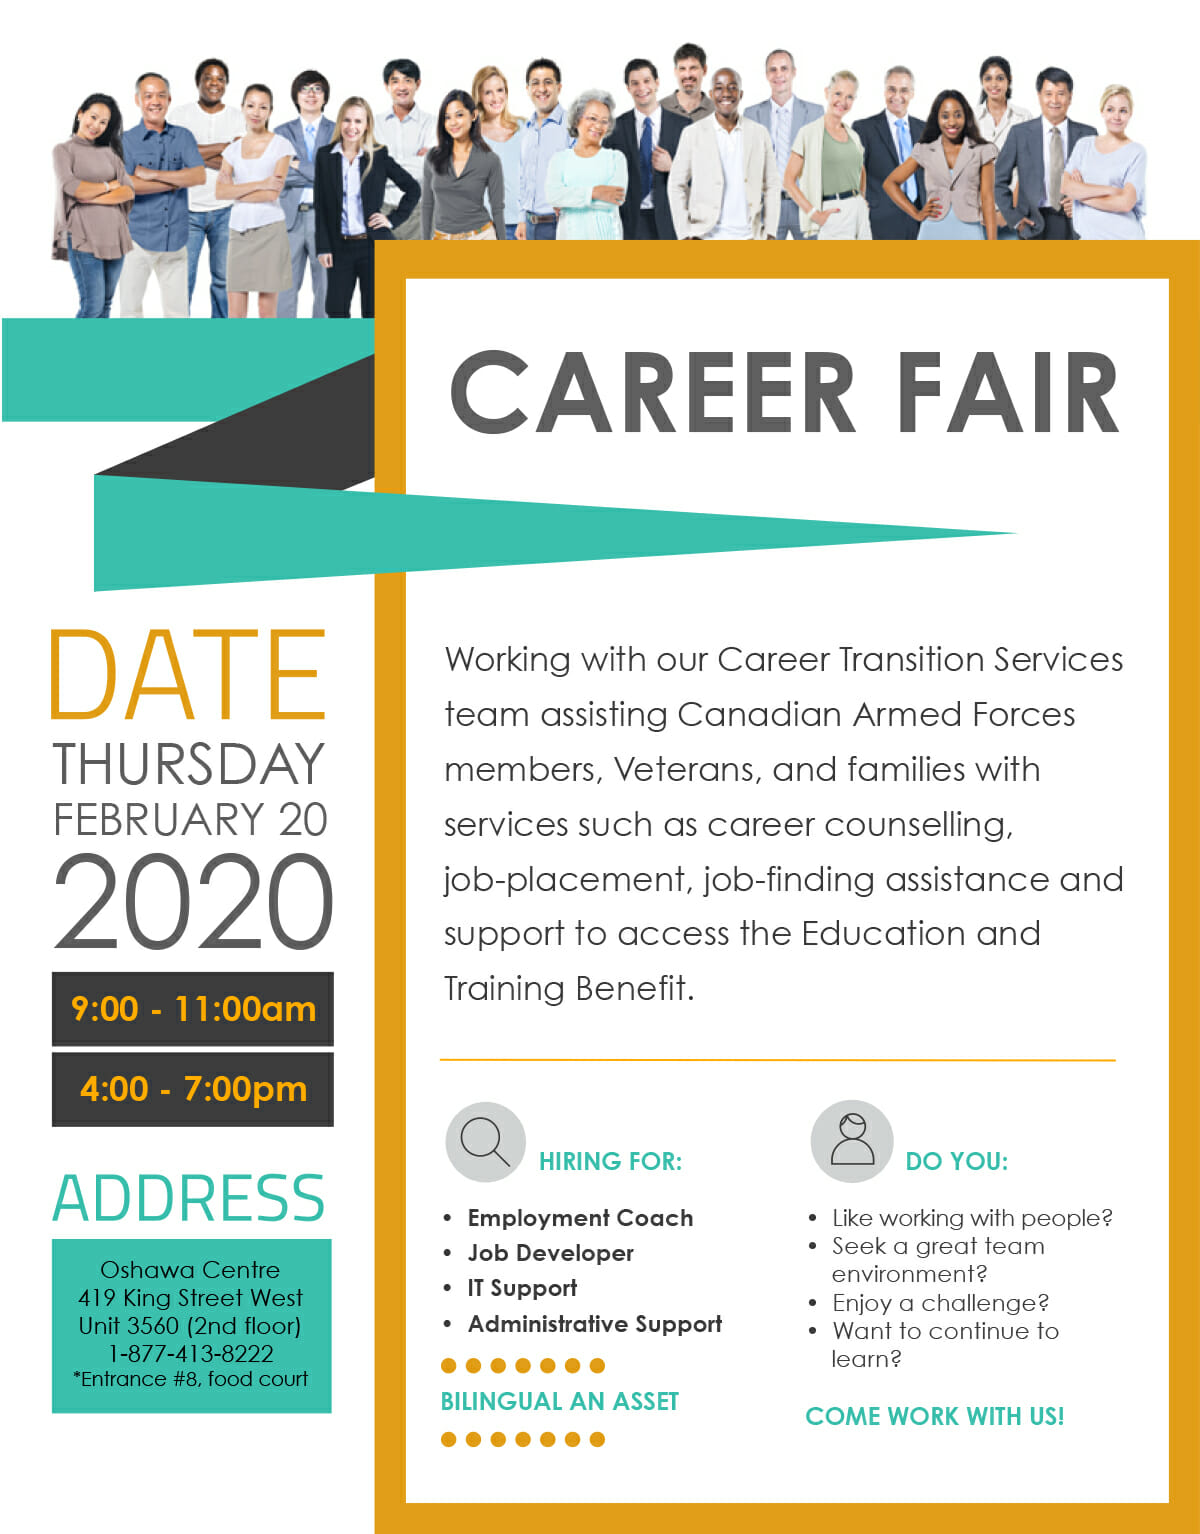 Details about Career Fair